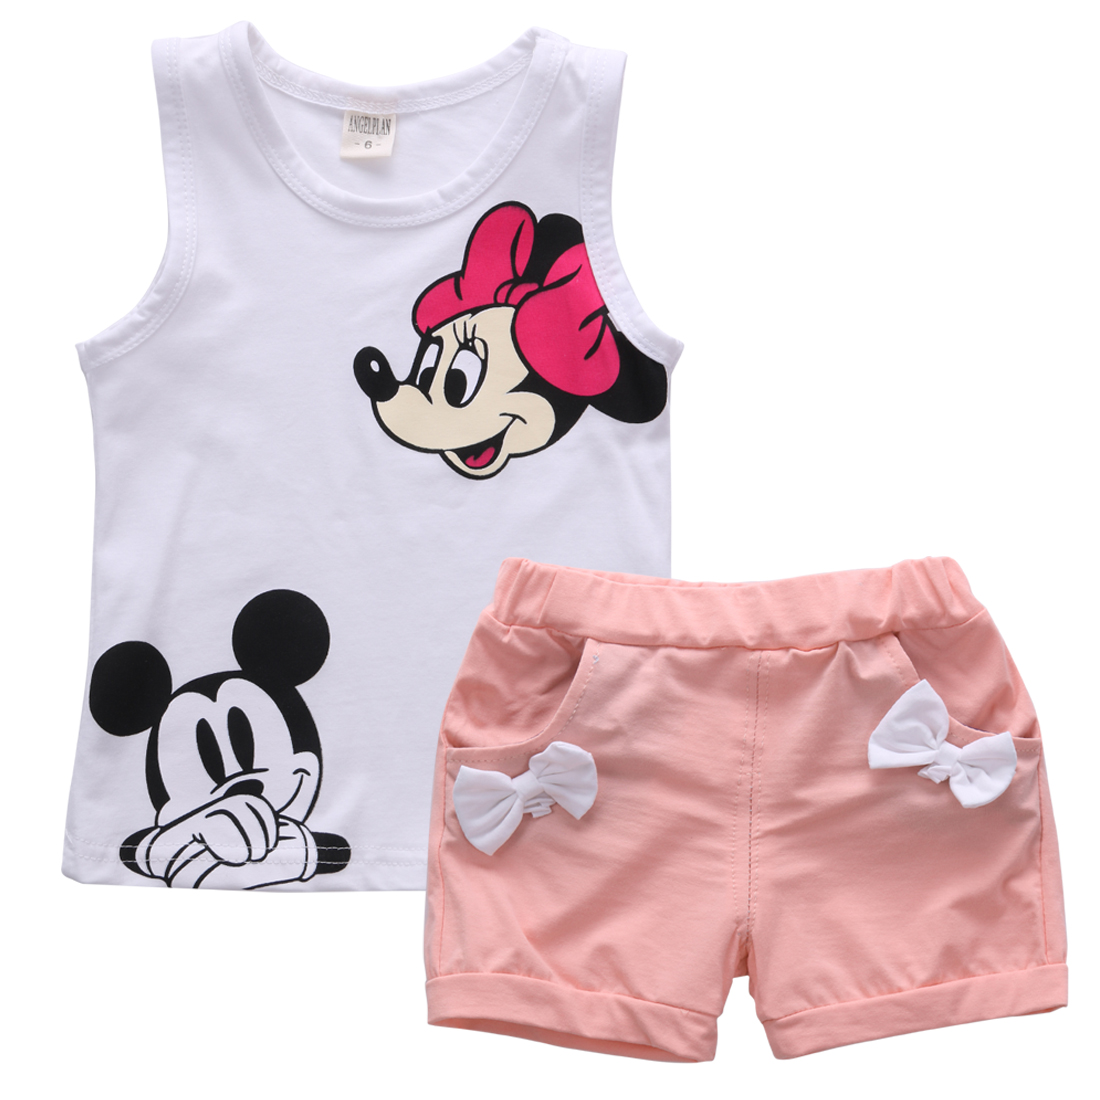 Helen115 Lovely Kids Baby Girls Summer Cartoon Printed Sleeveless T-shirt+Shorts 2PCS Set 1-5Years